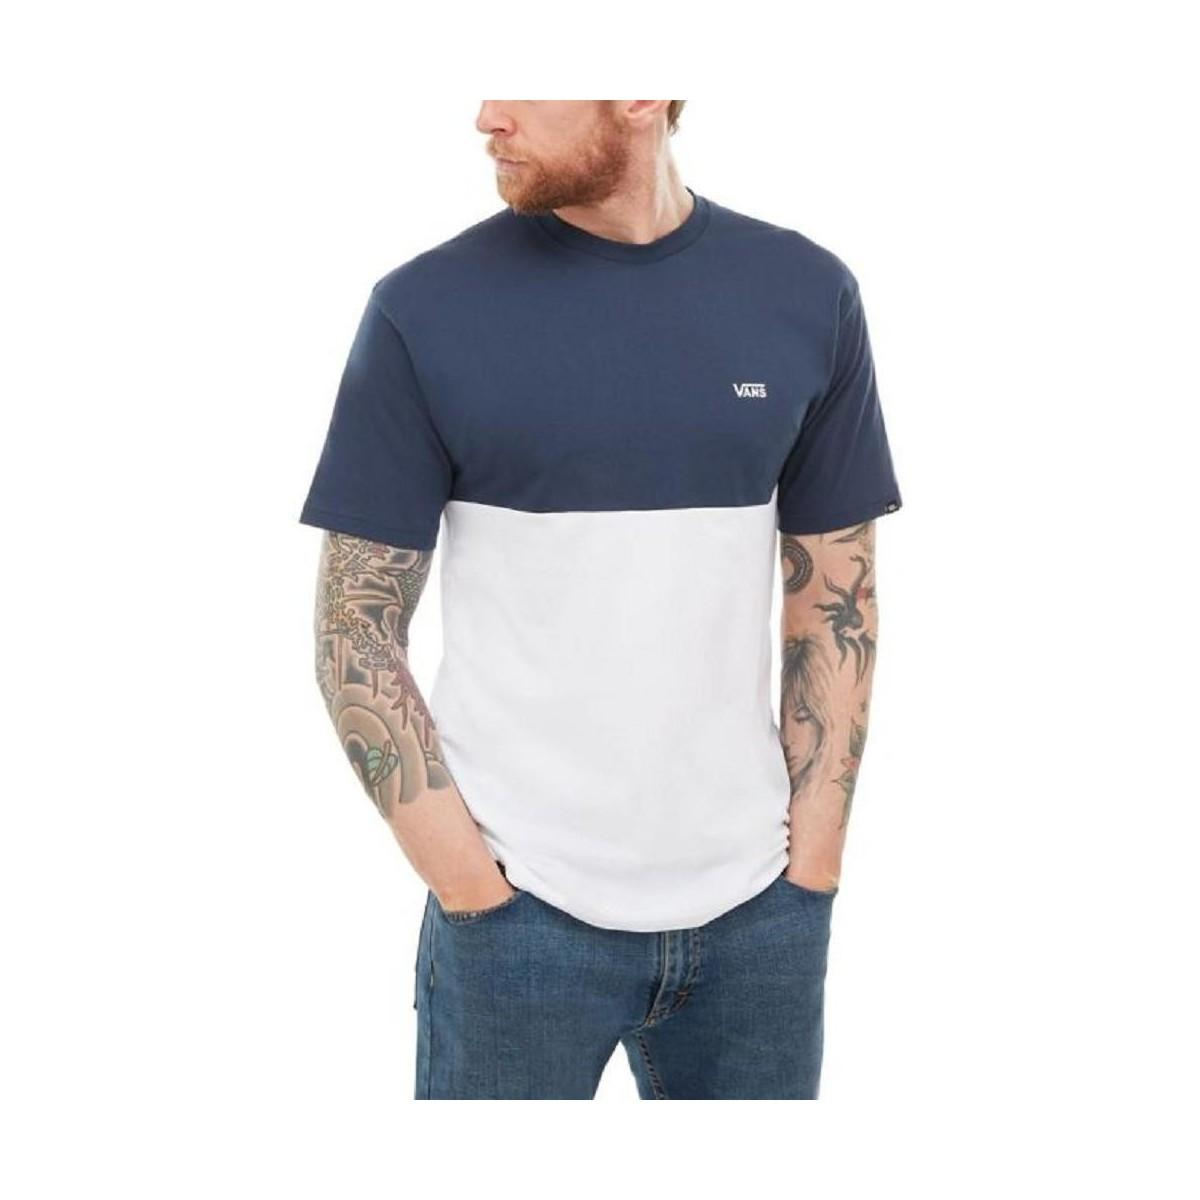 e325562899d2b Vans Camiseta Colorblock Tee Czd5s2 Men's Polo Shirt In White in ...